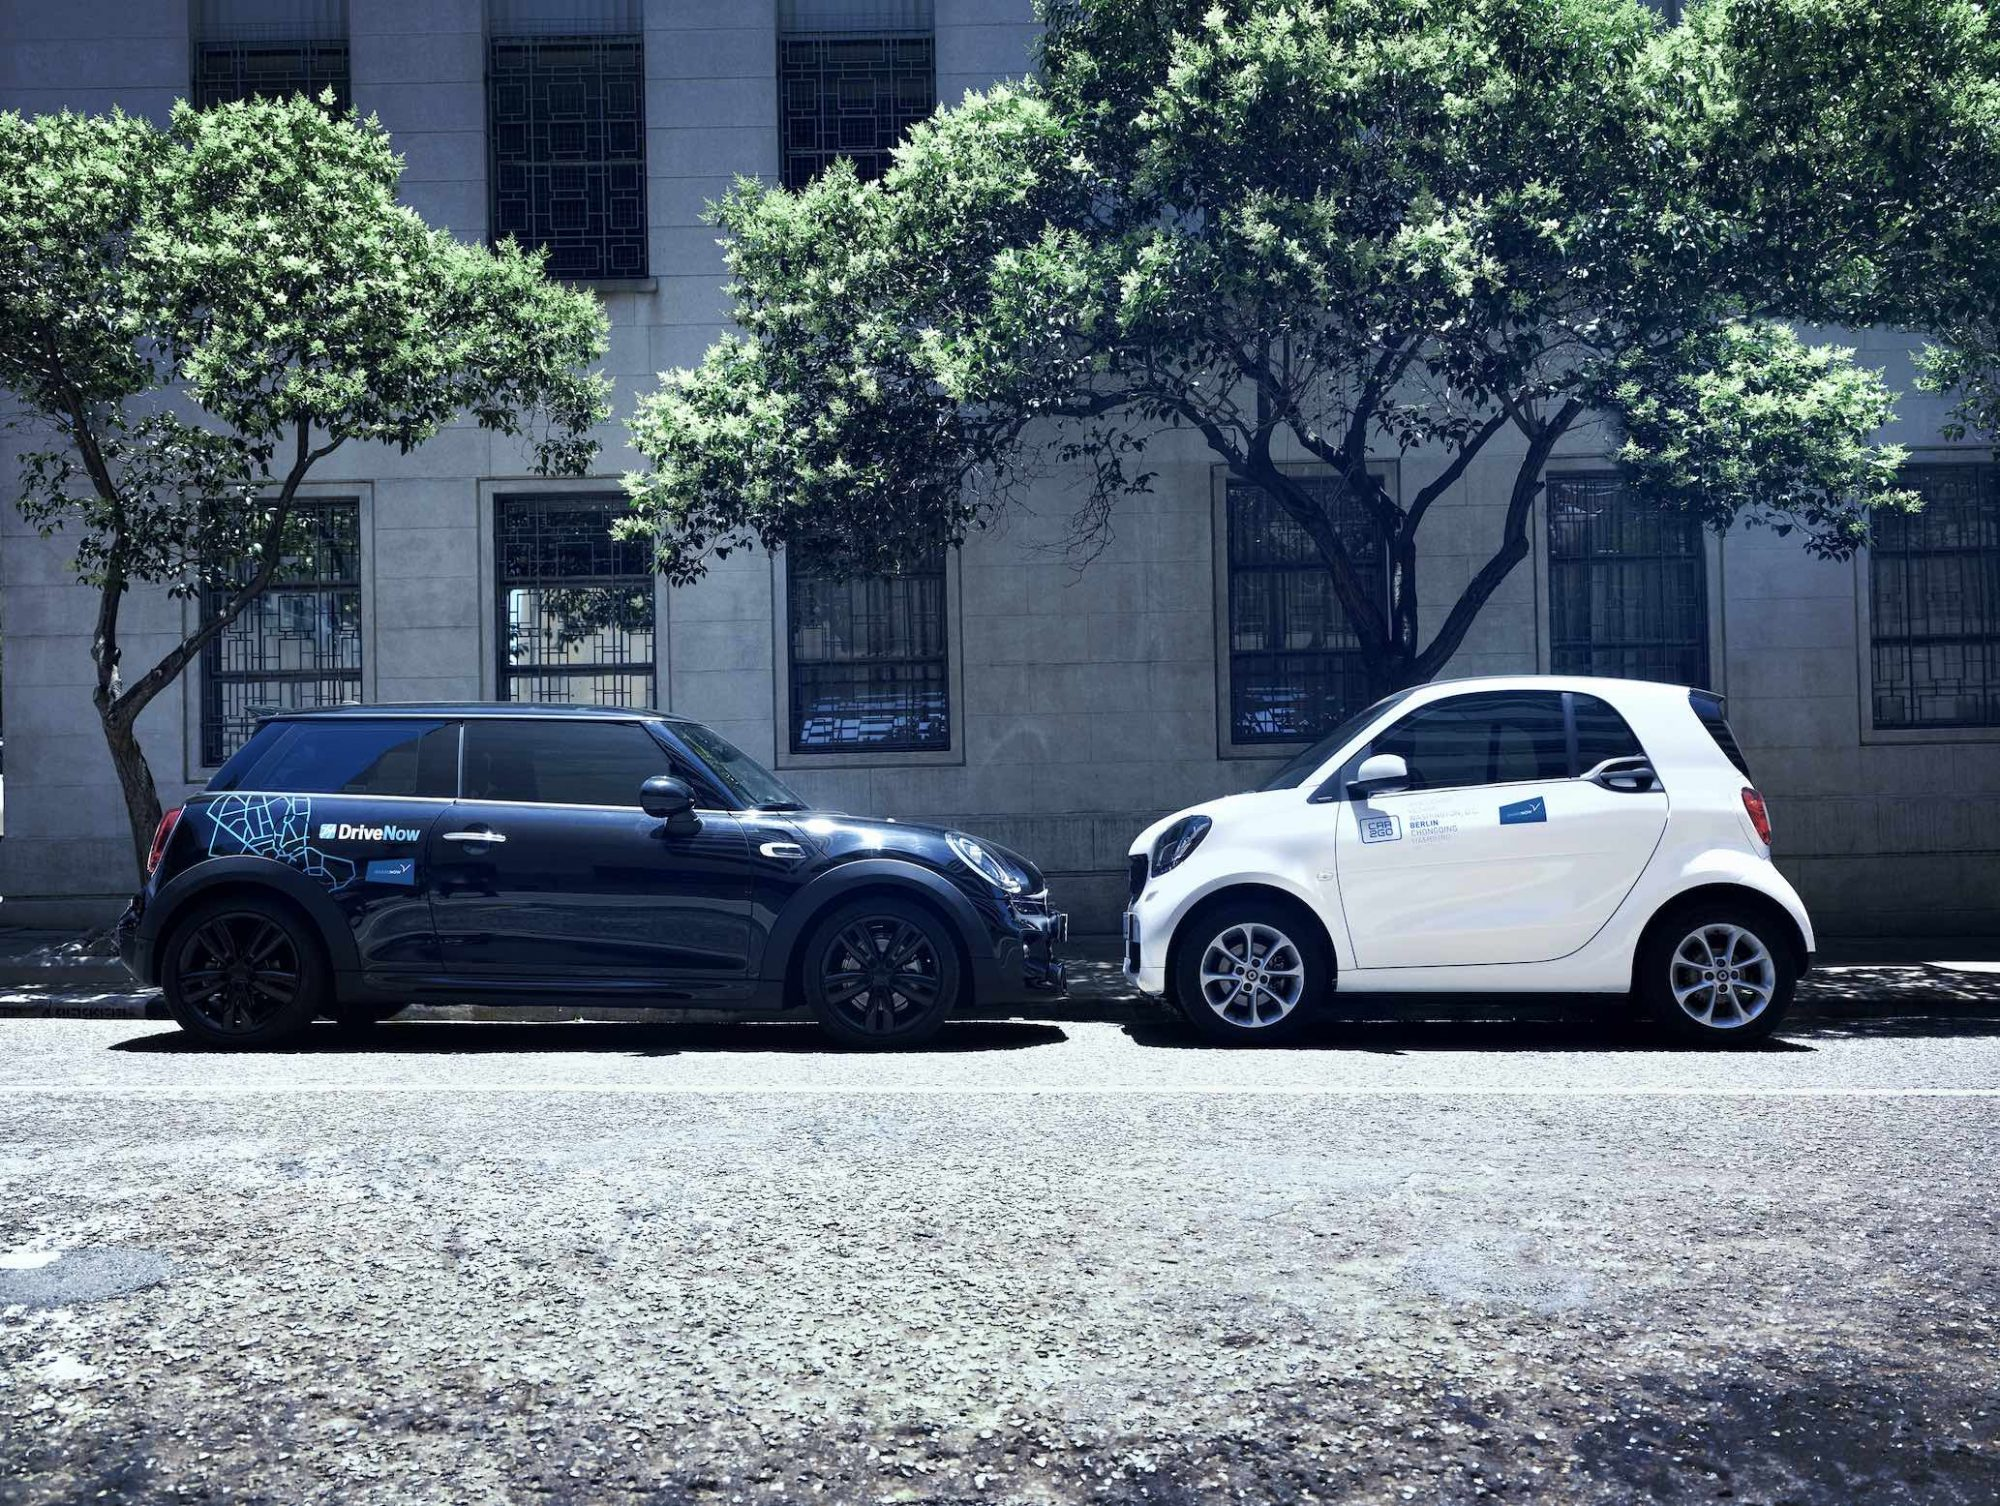 Share Now introduce il car sharing a lungo termine